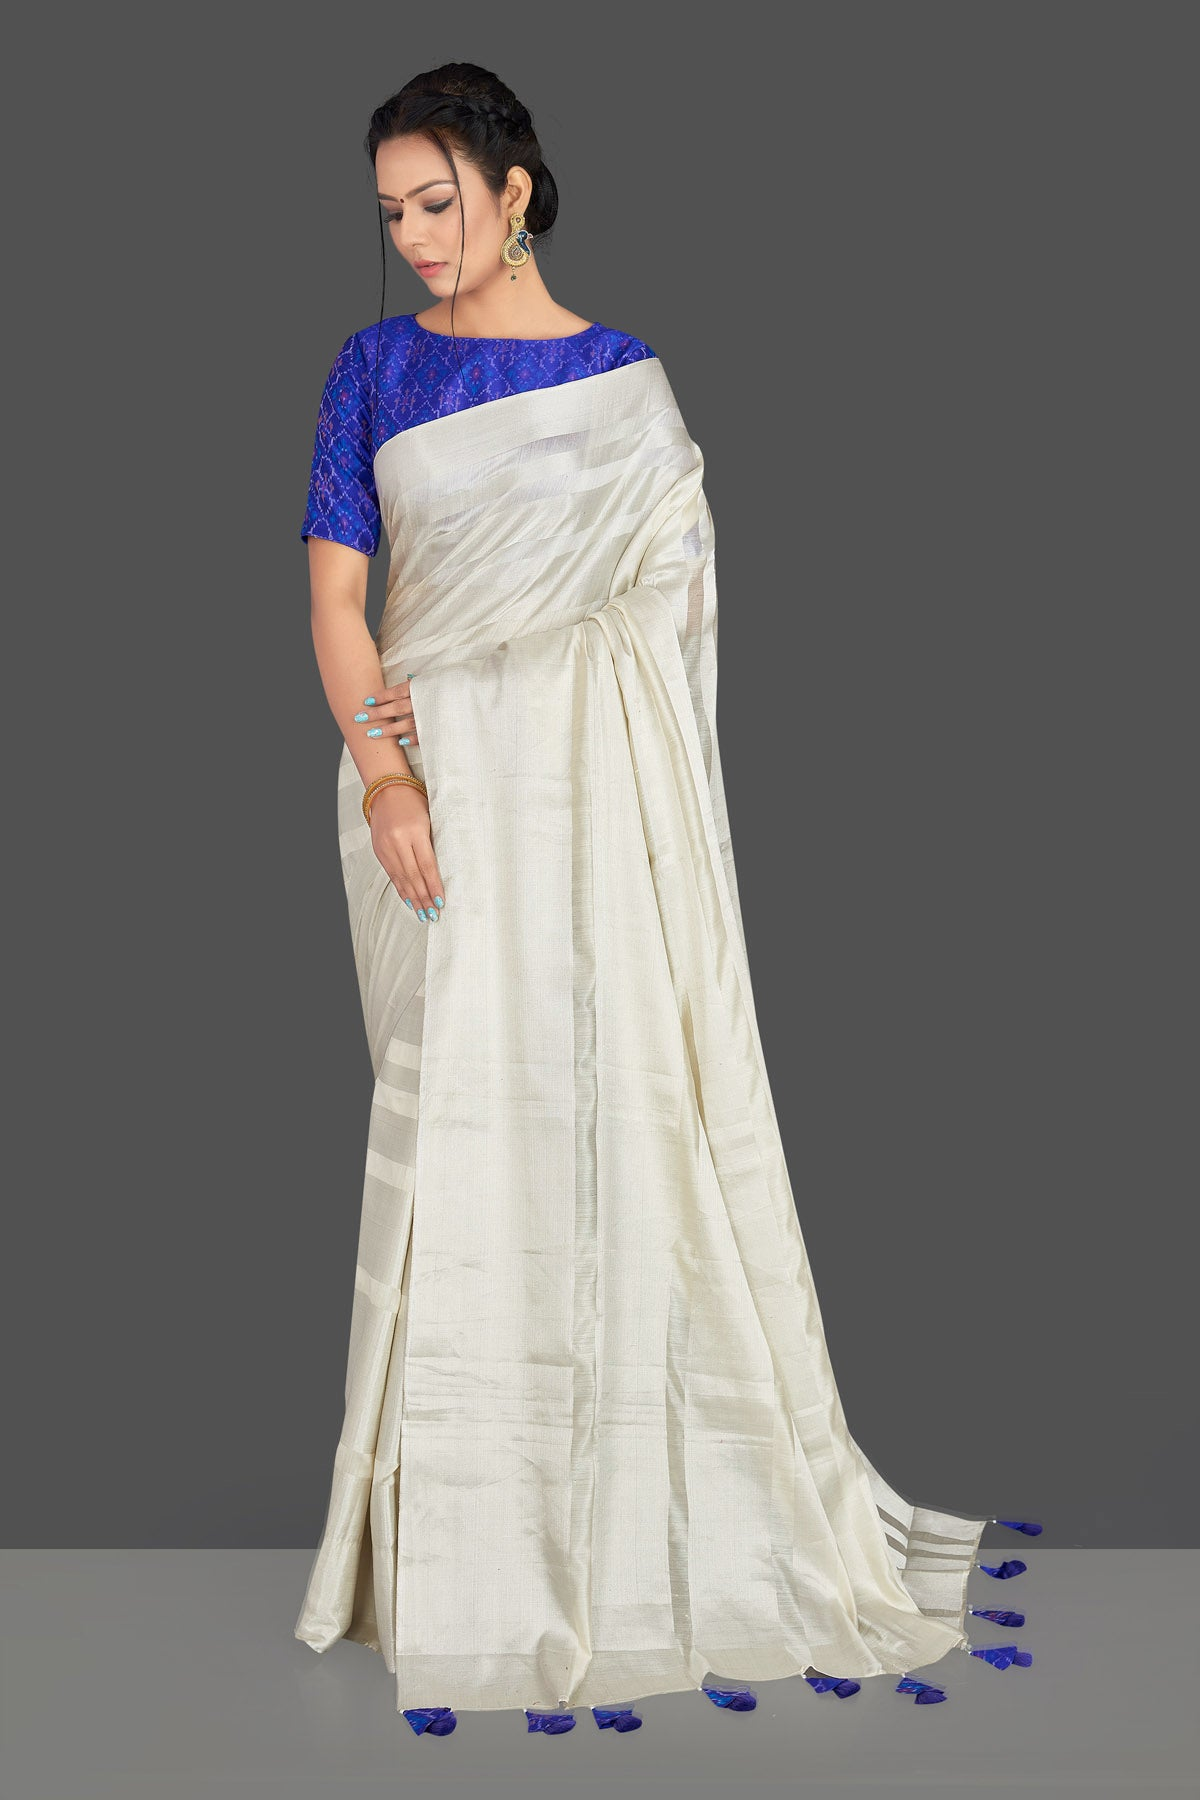 Buy lovely off-white tassar silk sari online in USA with blue patola ikkat saree blouse. Make your ethnic wardrobe rich with timeless handwoven sarees, tissue sarees, silk sarees, tussar saris from Pure Elegance Indian clothing store in USA. Find all the designer sarees for special occasions under one roof!-front